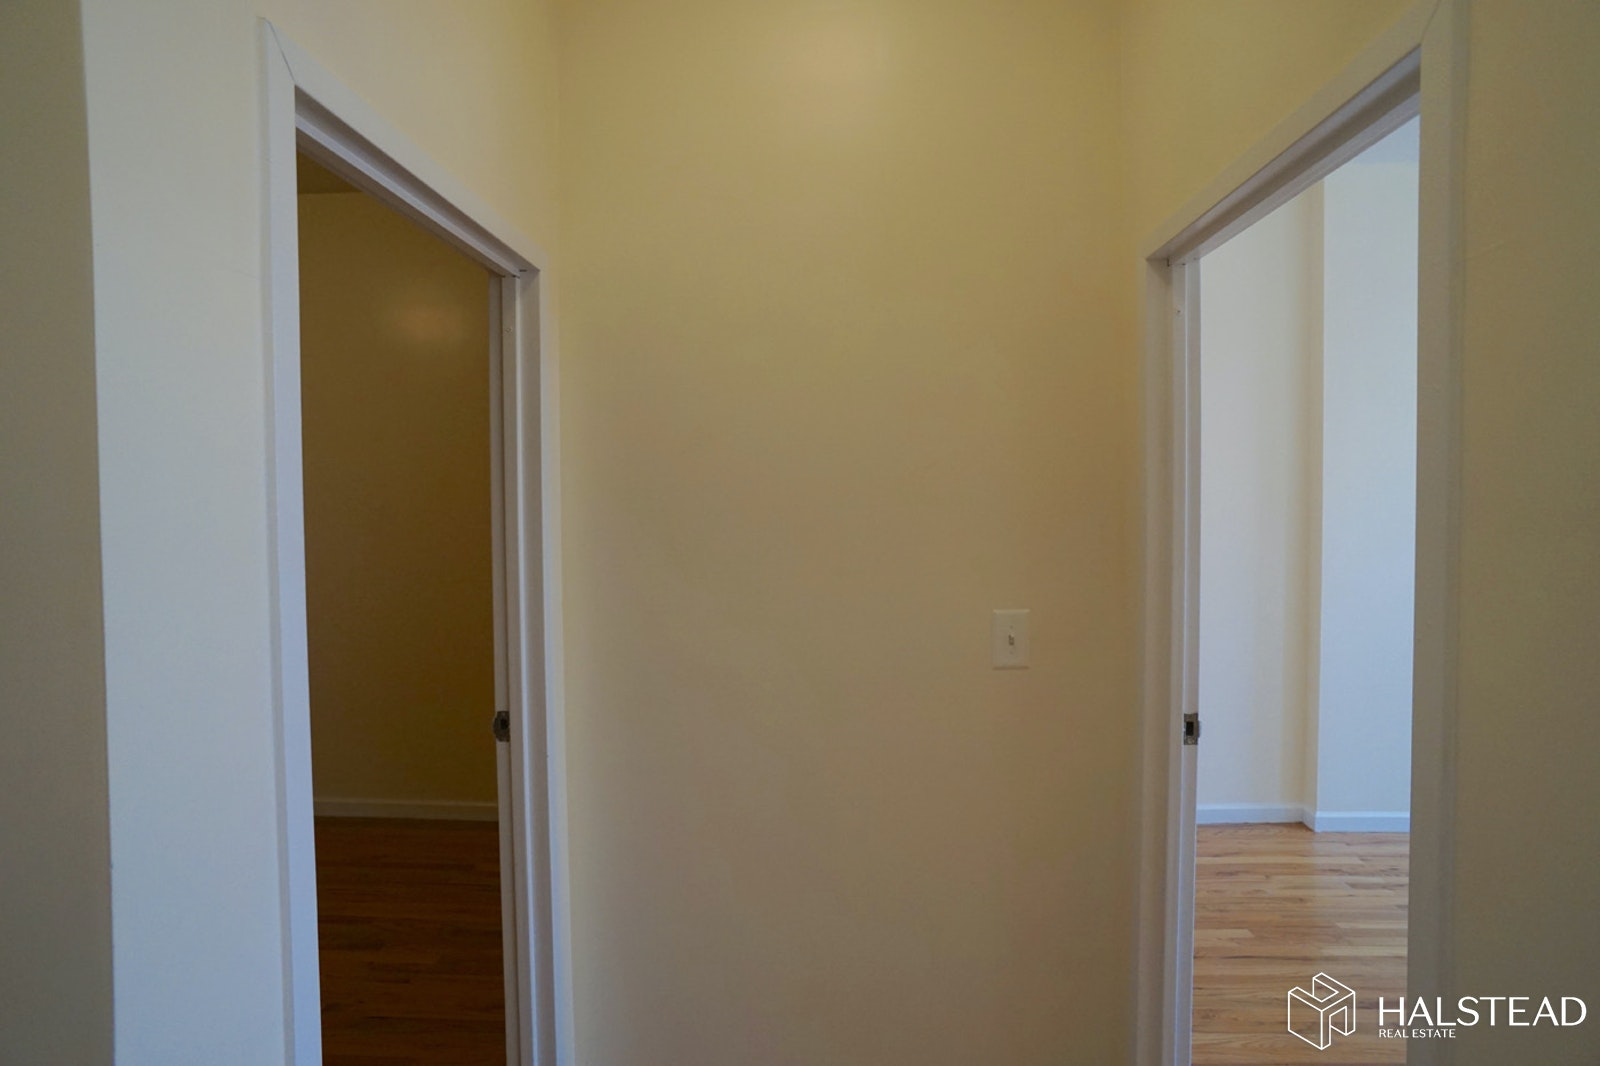 286 WILLOUGHBY AVENUE 3A, Bedford Stuyvesant, $1,994, Web #: 20295456